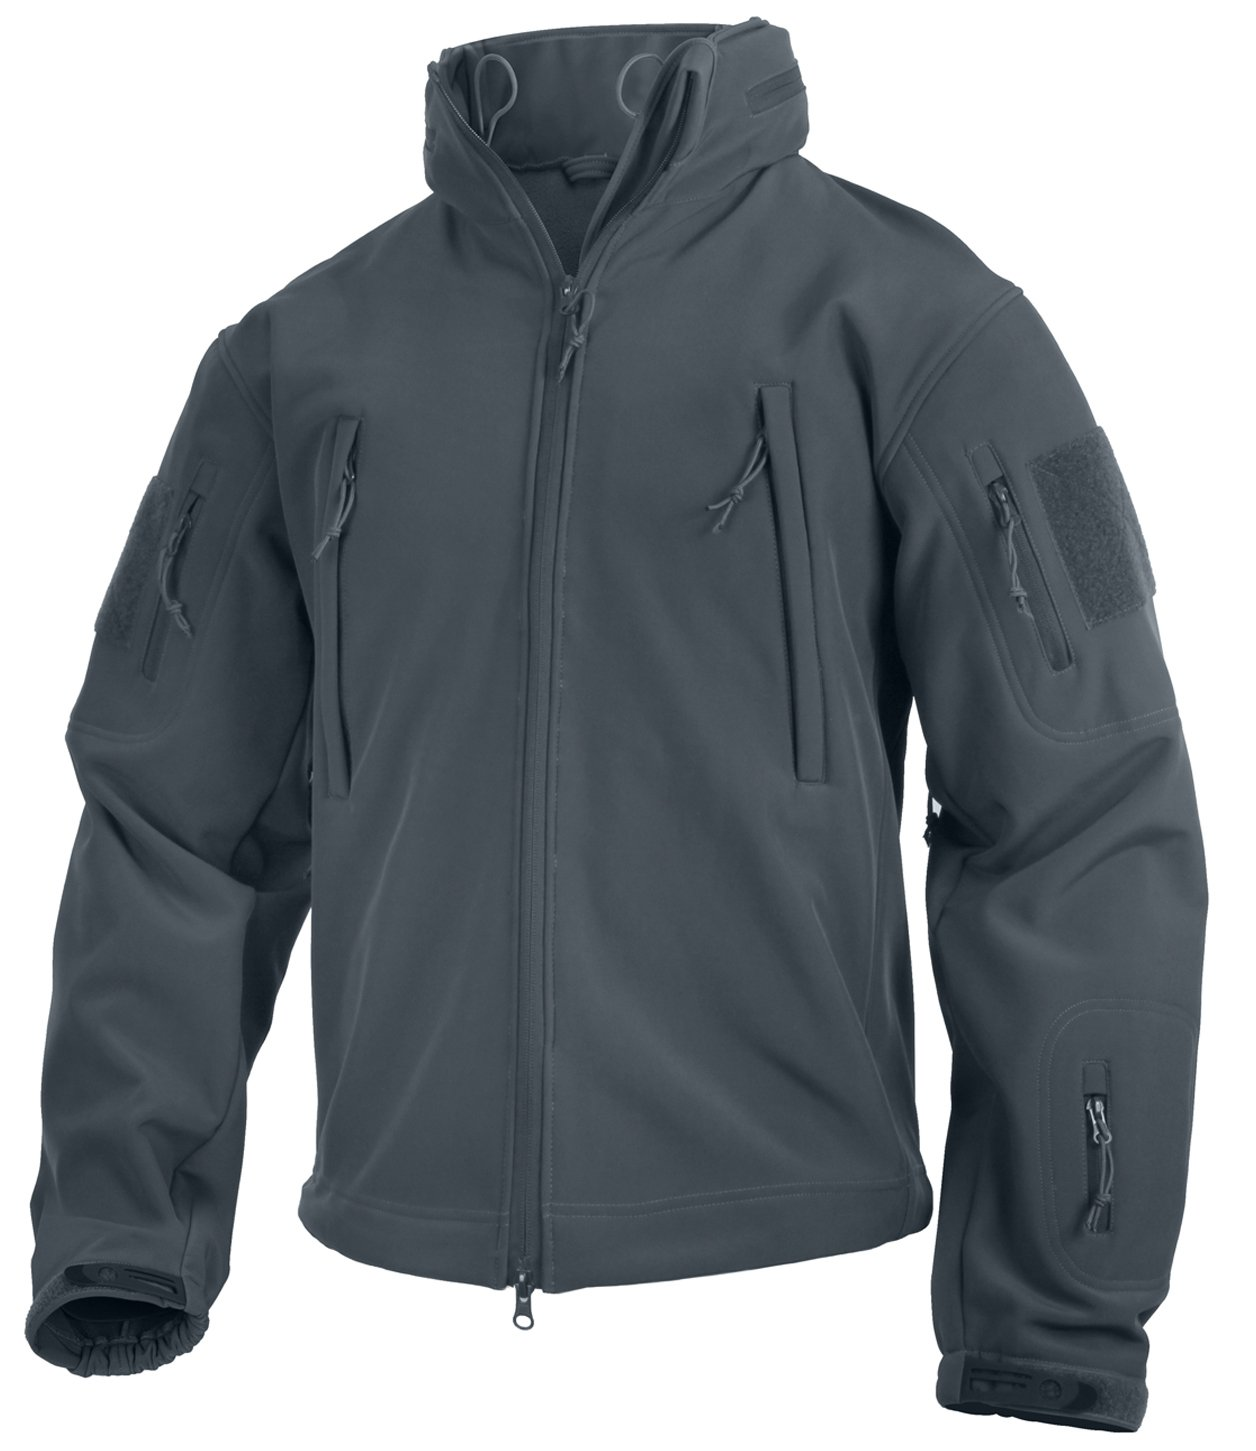 Rothco Special Ops Tactical Soft Shell Jacket, Gun Metal Gray, Large